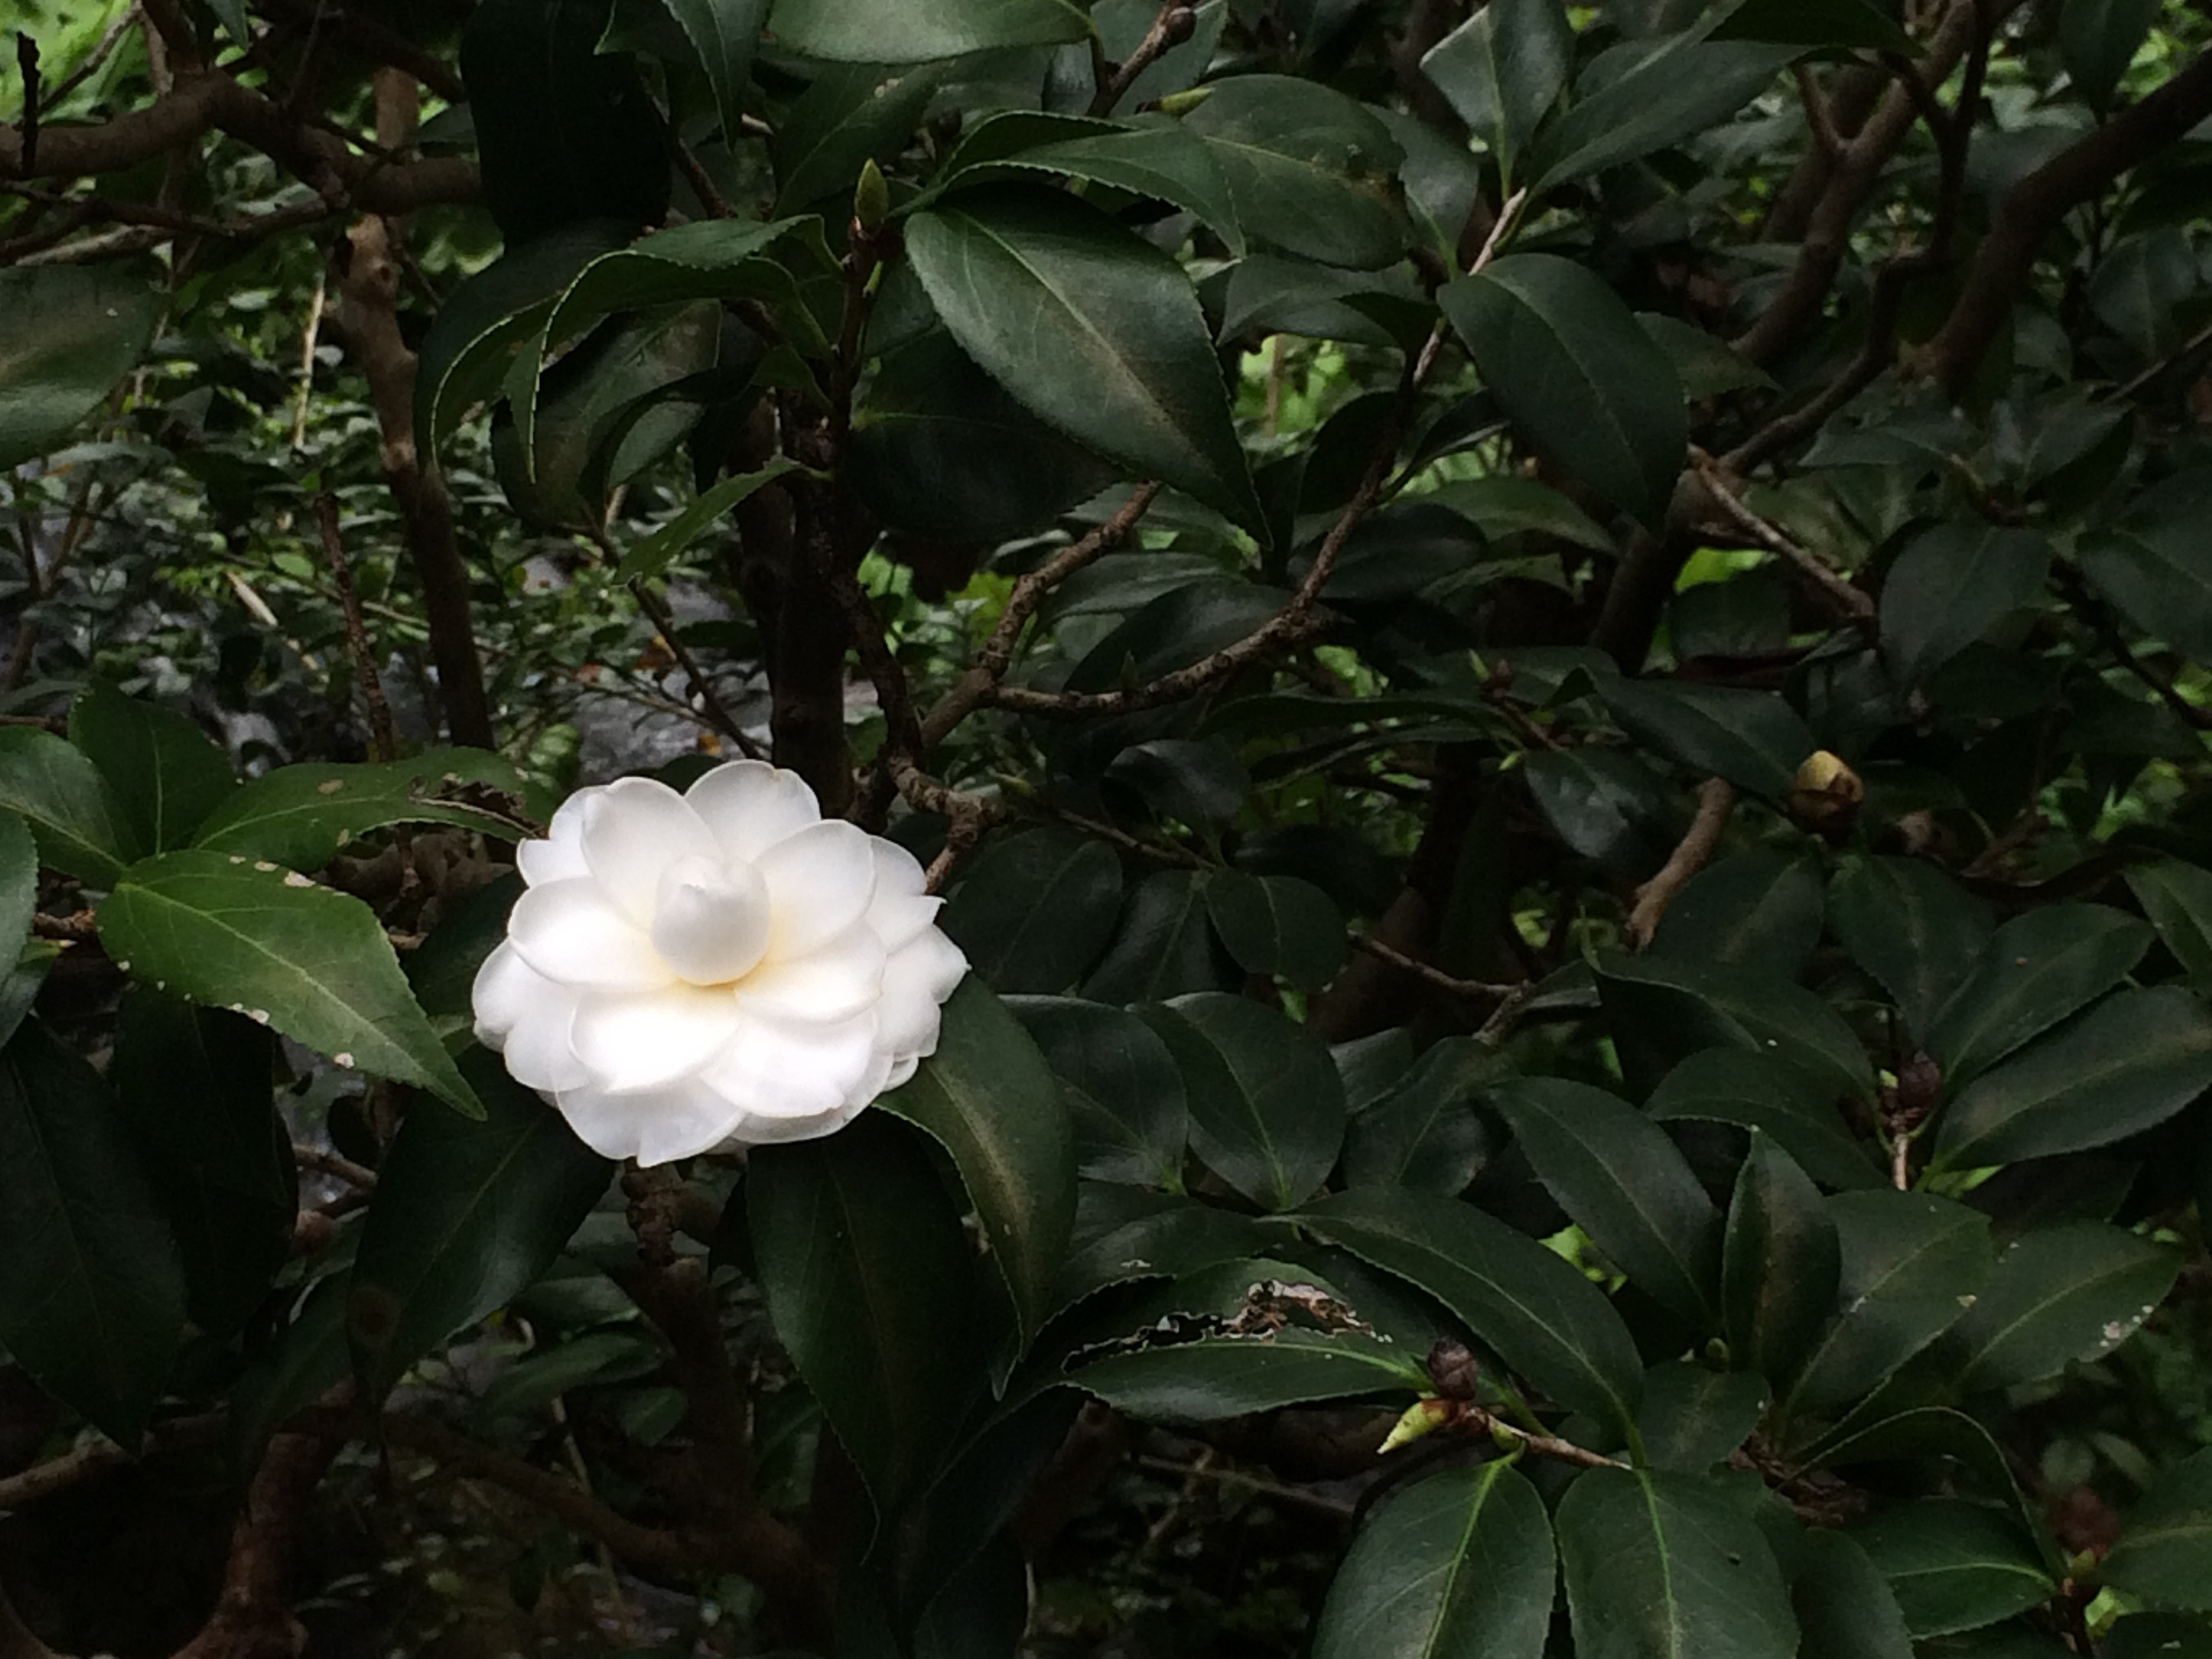 Snow Camellia in bed of green leaves